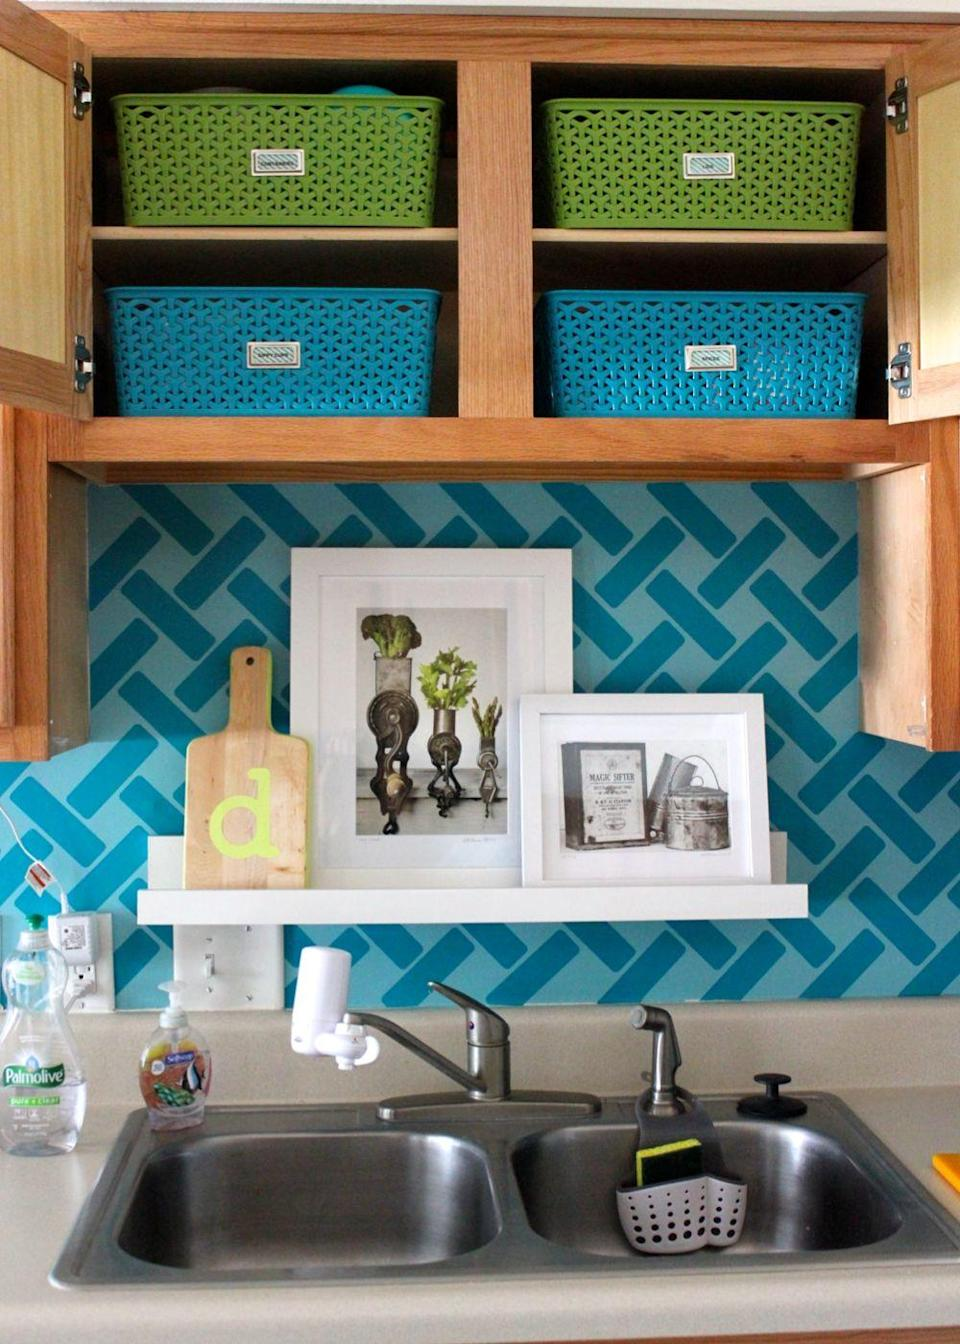 """<p>If you don't have a tile <a href=""""https://www.goodhousekeeping.com/home/decorating-ideas/g3520/unique-beautiful-kitchen-style-tips/"""" rel=""""nofollow noopener"""" target=""""_blank"""" data-ylk=""""slk:backsplash"""" class=""""link rapid-noclick-resp"""">backsplash</a>, consider adding a skinny picture ledge above the sink. It's an ideal spot for stowing cutting boards, or you can add a few framed artworks for a decorative touch.</p><p><a href=""""http://thehomesihavemade.com/2014/02/storage-ideas-for-little-upper-cabinets/"""" rel=""""nofollow noopener"""" target=""""_blank"""" data-ylk=""""slk:See more at The Homes I Have Made »"""" class=""""link rapid-noclick-resp""""><em>See more at The Homes I Have Made »</em></a></p>"""